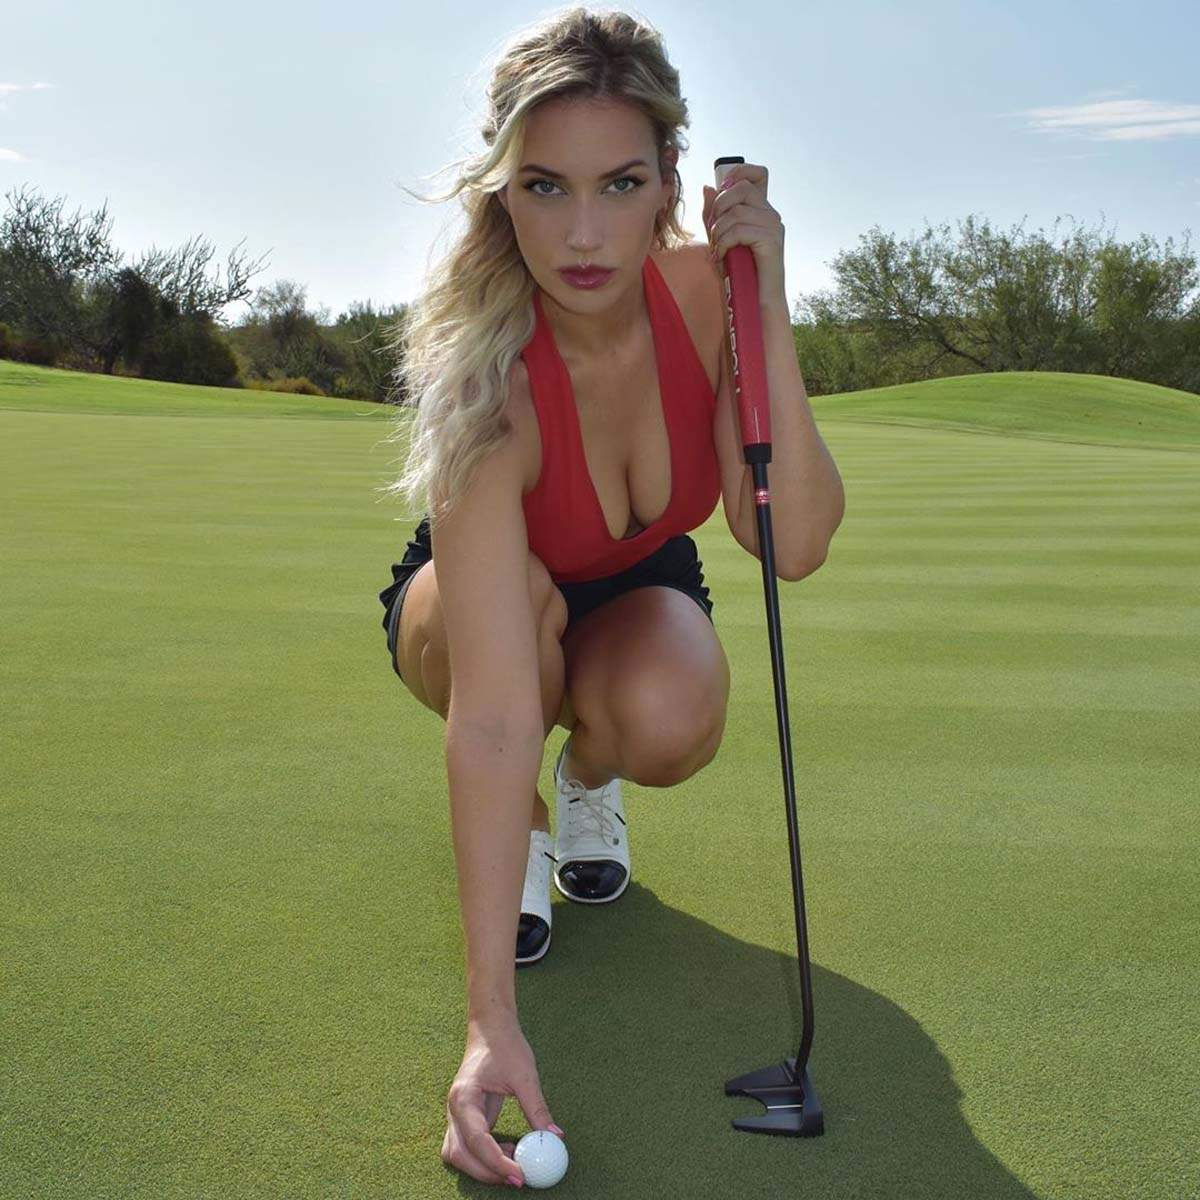 Stunning golfer Paige Spiranac gives fans golf lessons on social media